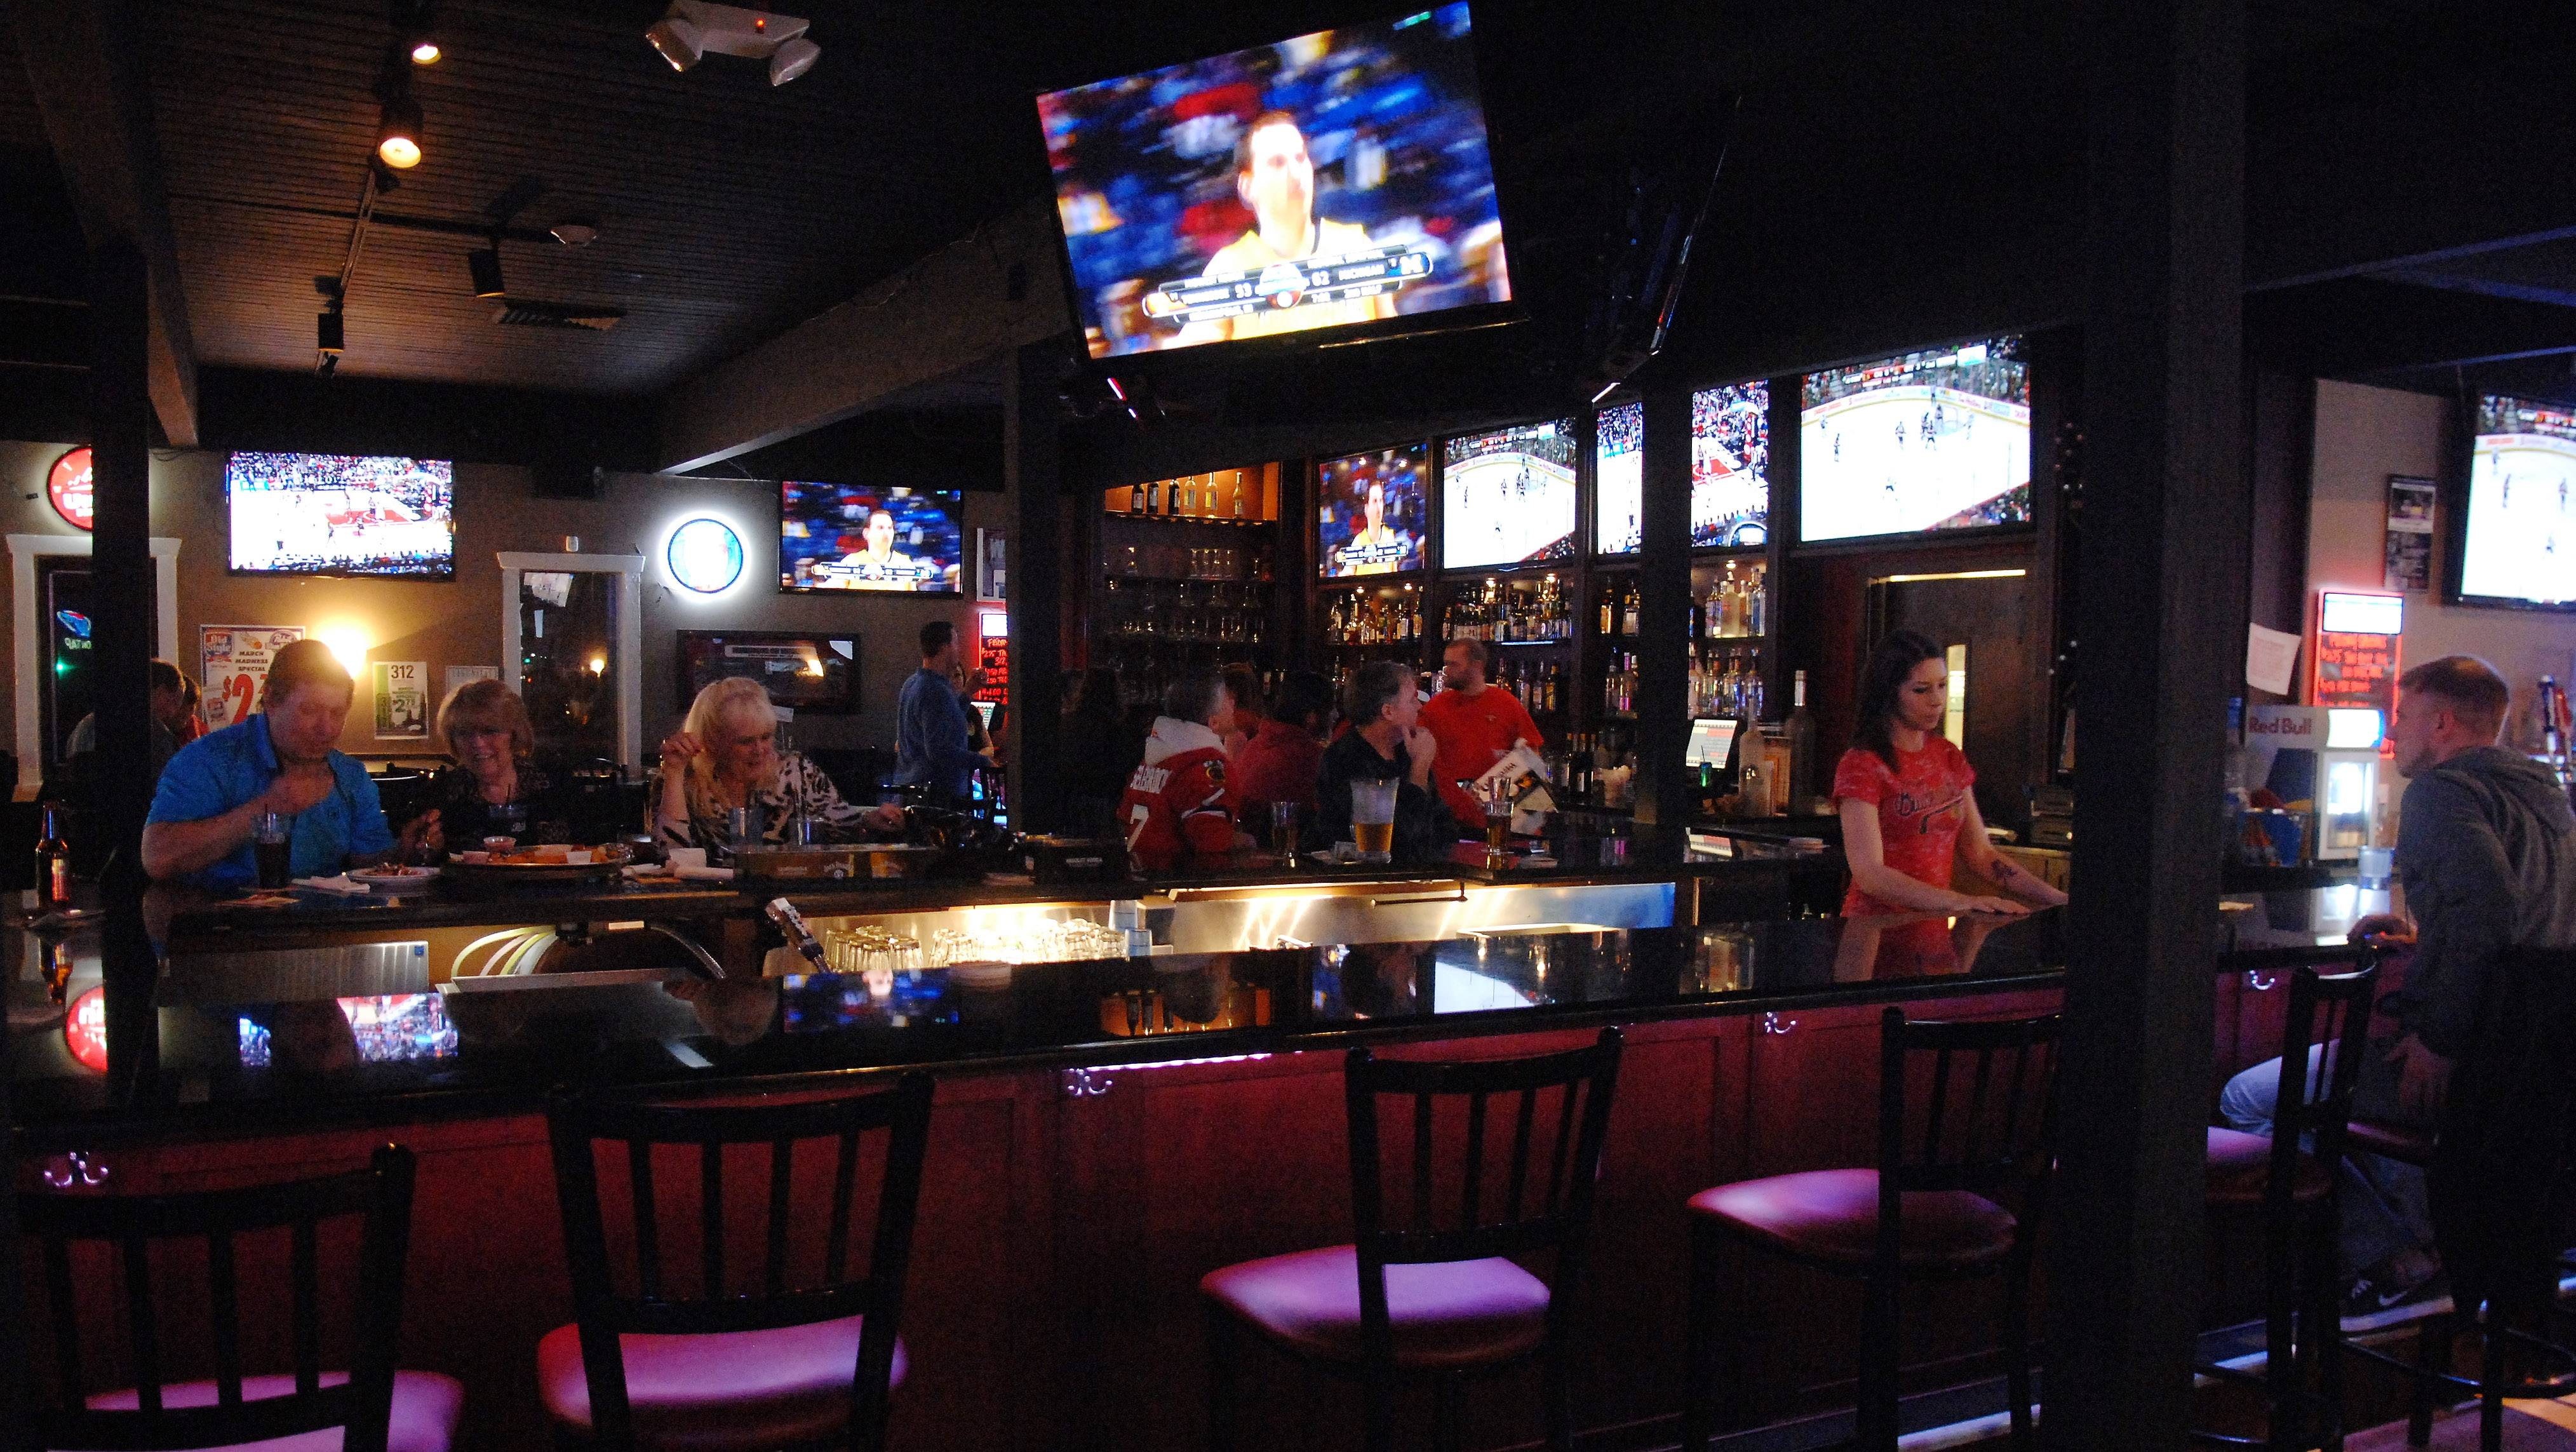 You can watch a game upstairs at D Hangout Bar and Grill in Elgin, or mellow out in a separate piano bar.